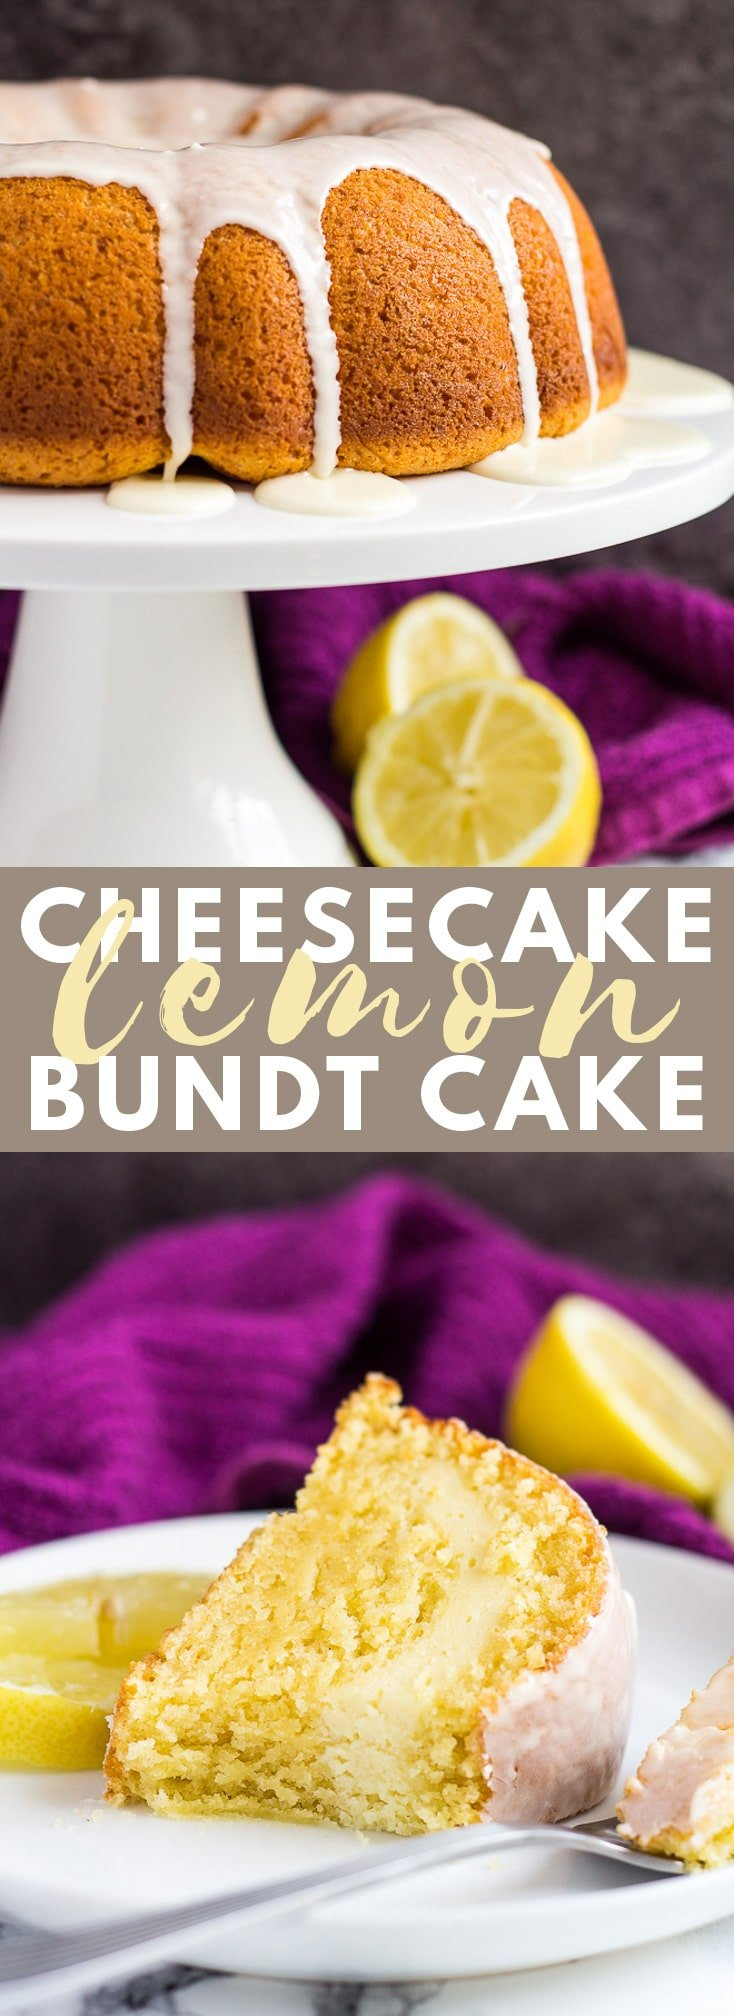 Cheesecake Swirl Lemon Bundt Cake - Deliciously moist and fluffy lemon-infused bundt cake, filled with a cheesecake swirl, and drizzled with a lemon glaze! #cheesecake #lemon #bundtcake #cakerecipes